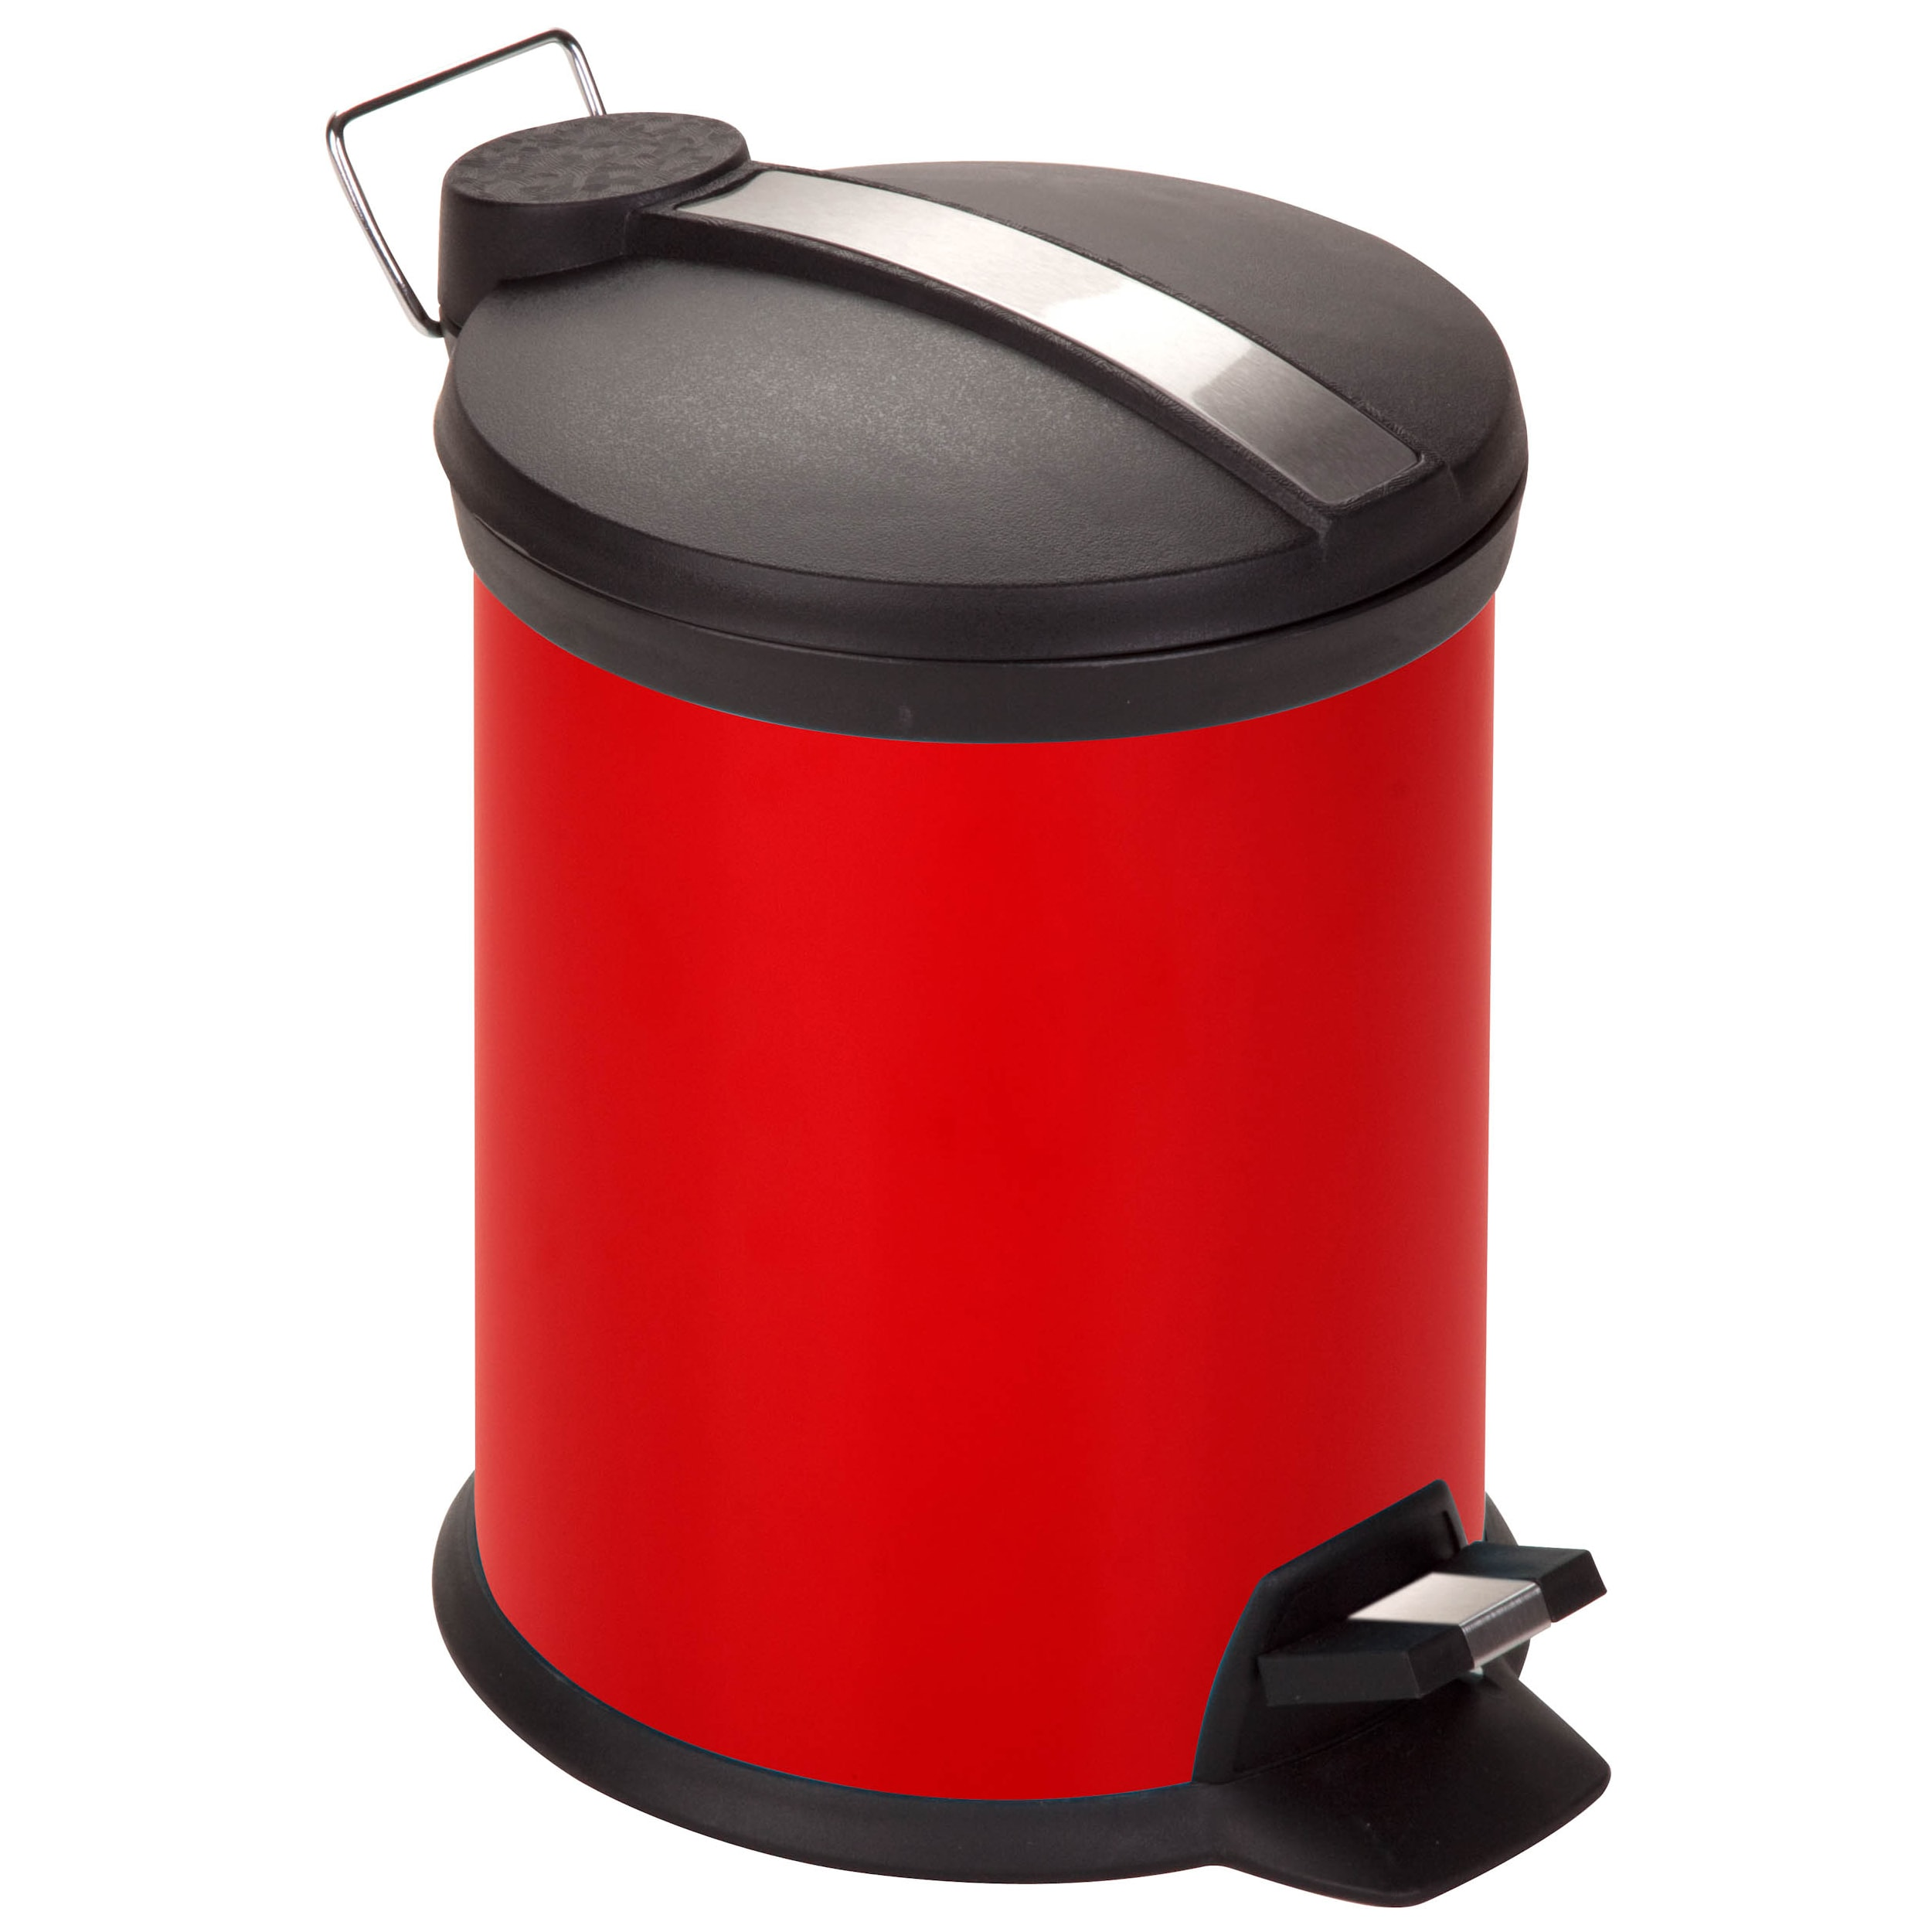 New Kitchen Trash Can Red 3 Liter Steel Step Trash Can on ...